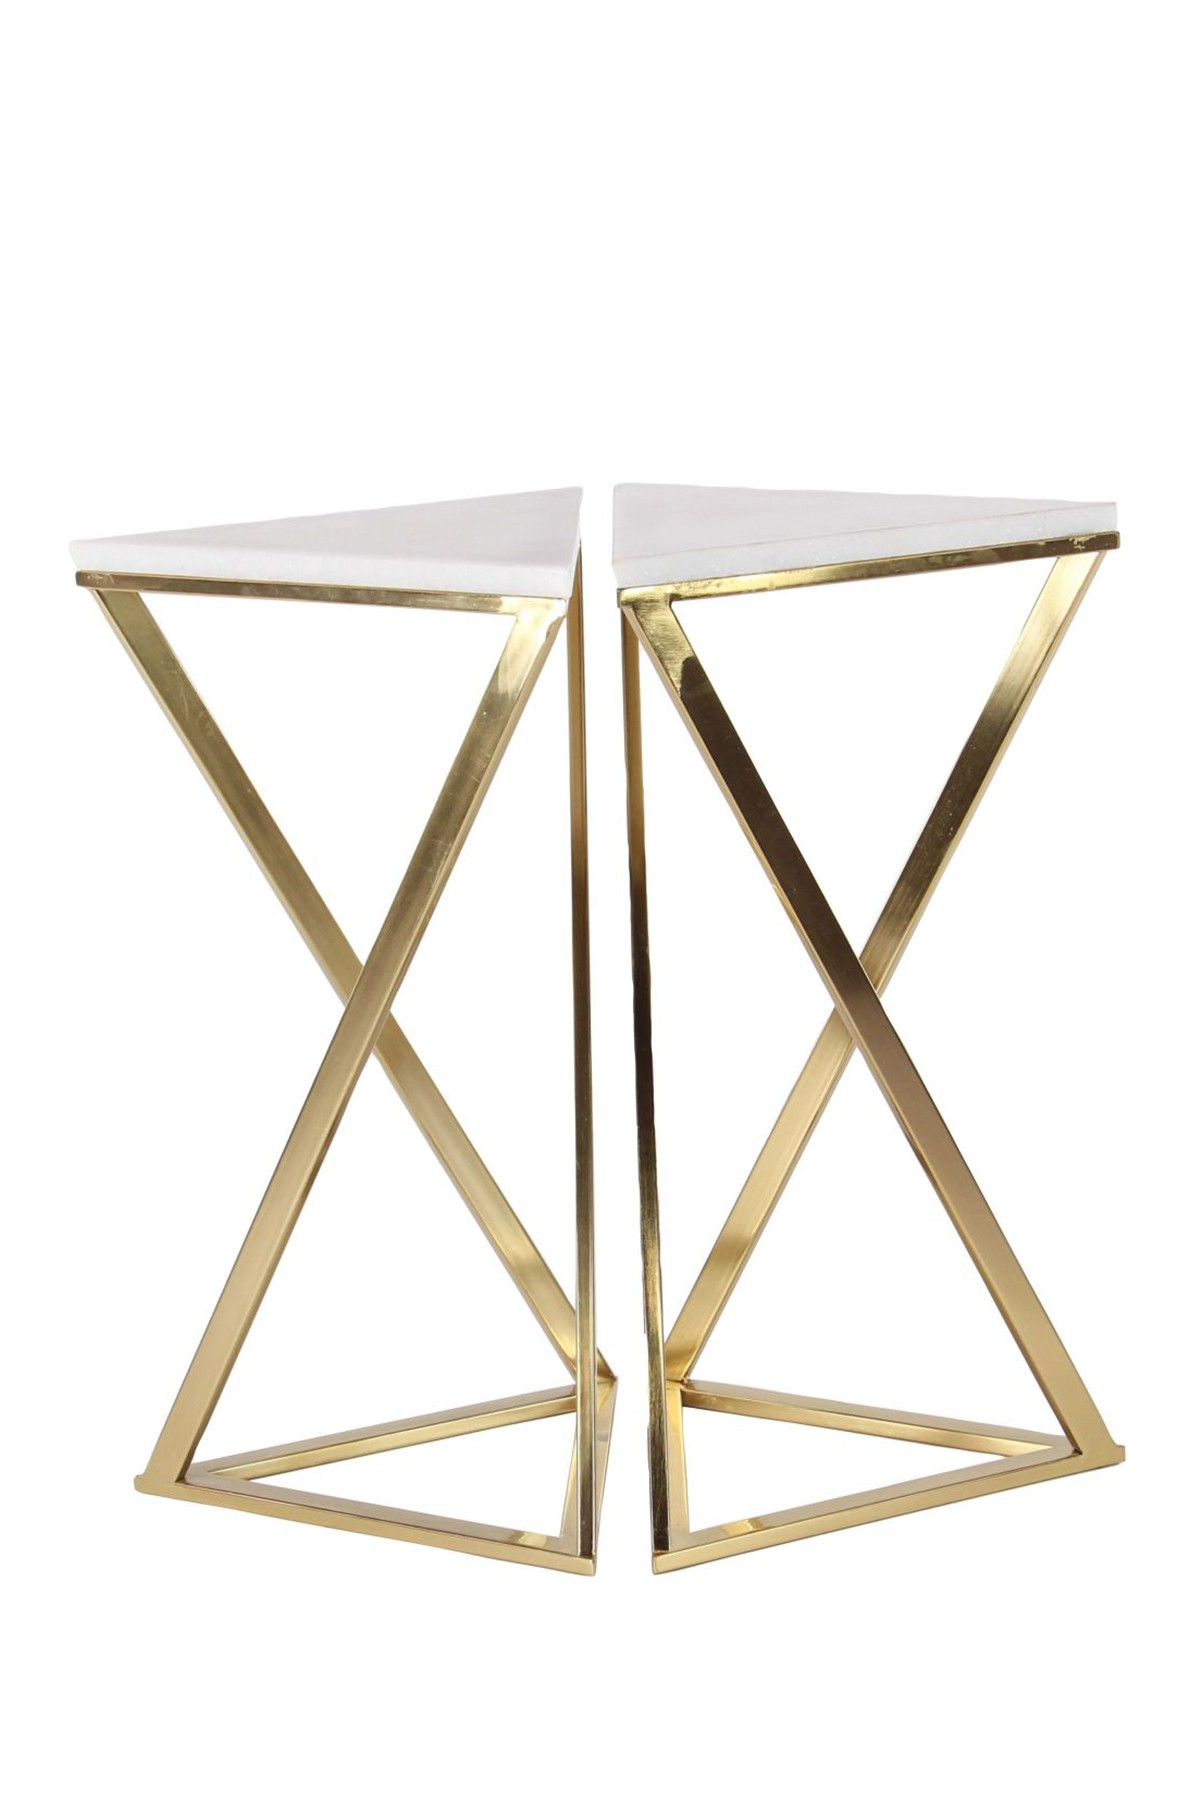 como gold antique shades lamp small tables ideas and set living plus accent target colo room tiffany painting for diy end lamps threshold design wall contemporary table redmond